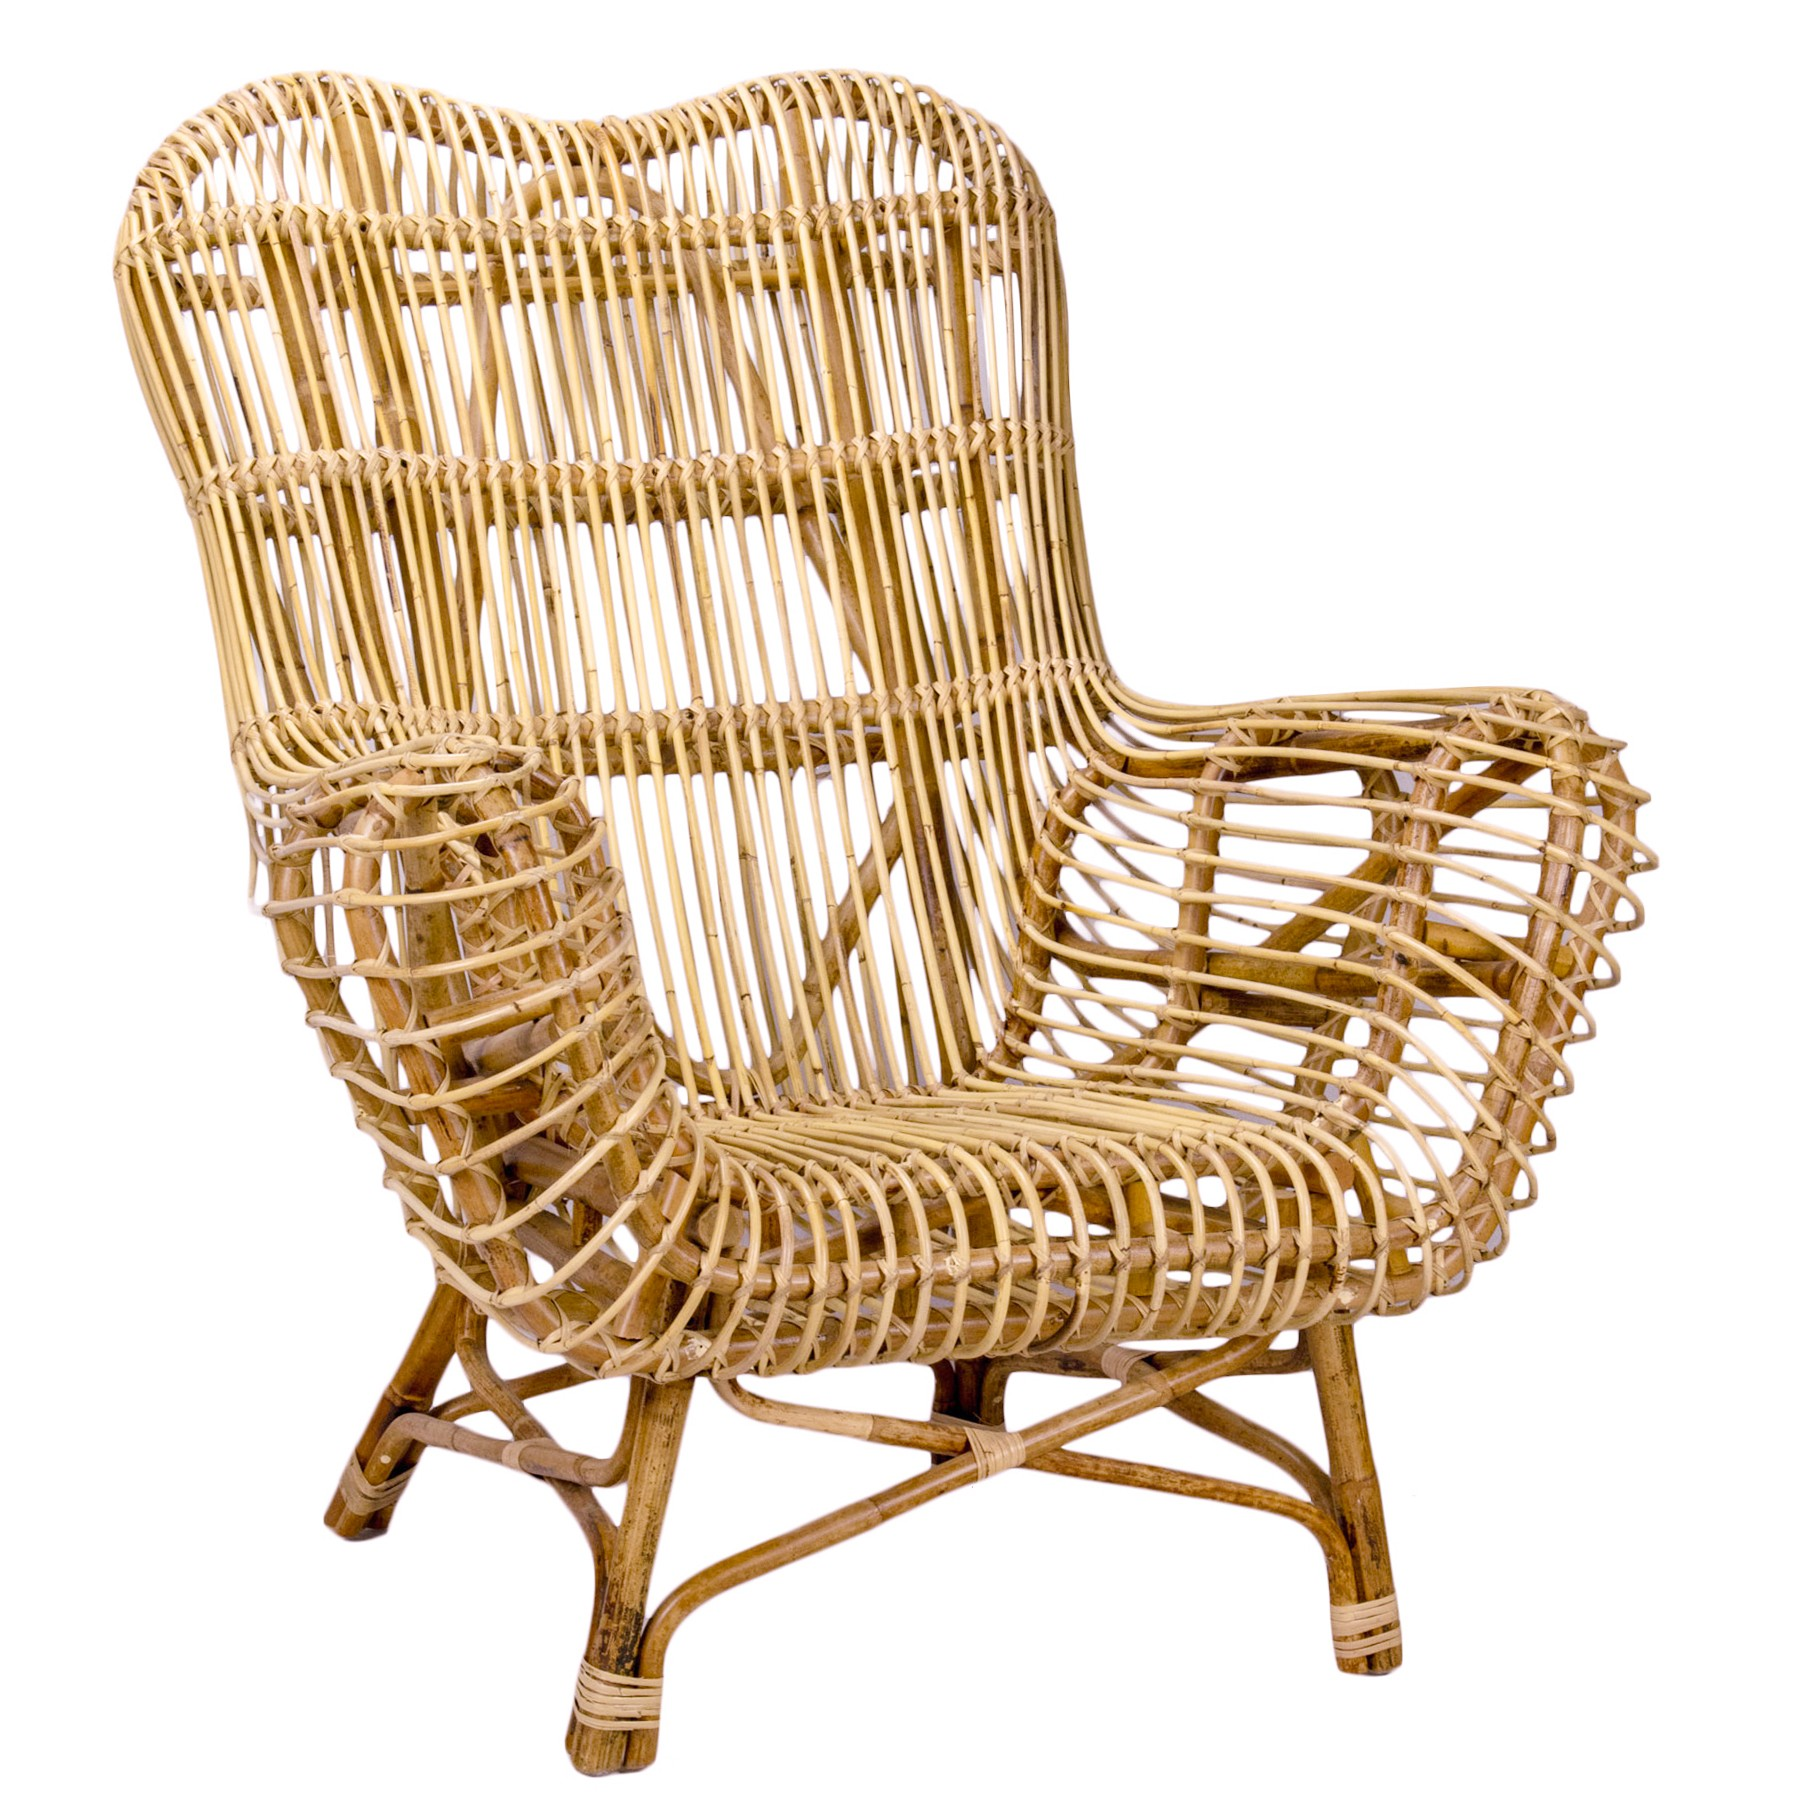 Kingstown Rattan Lounge Armchair